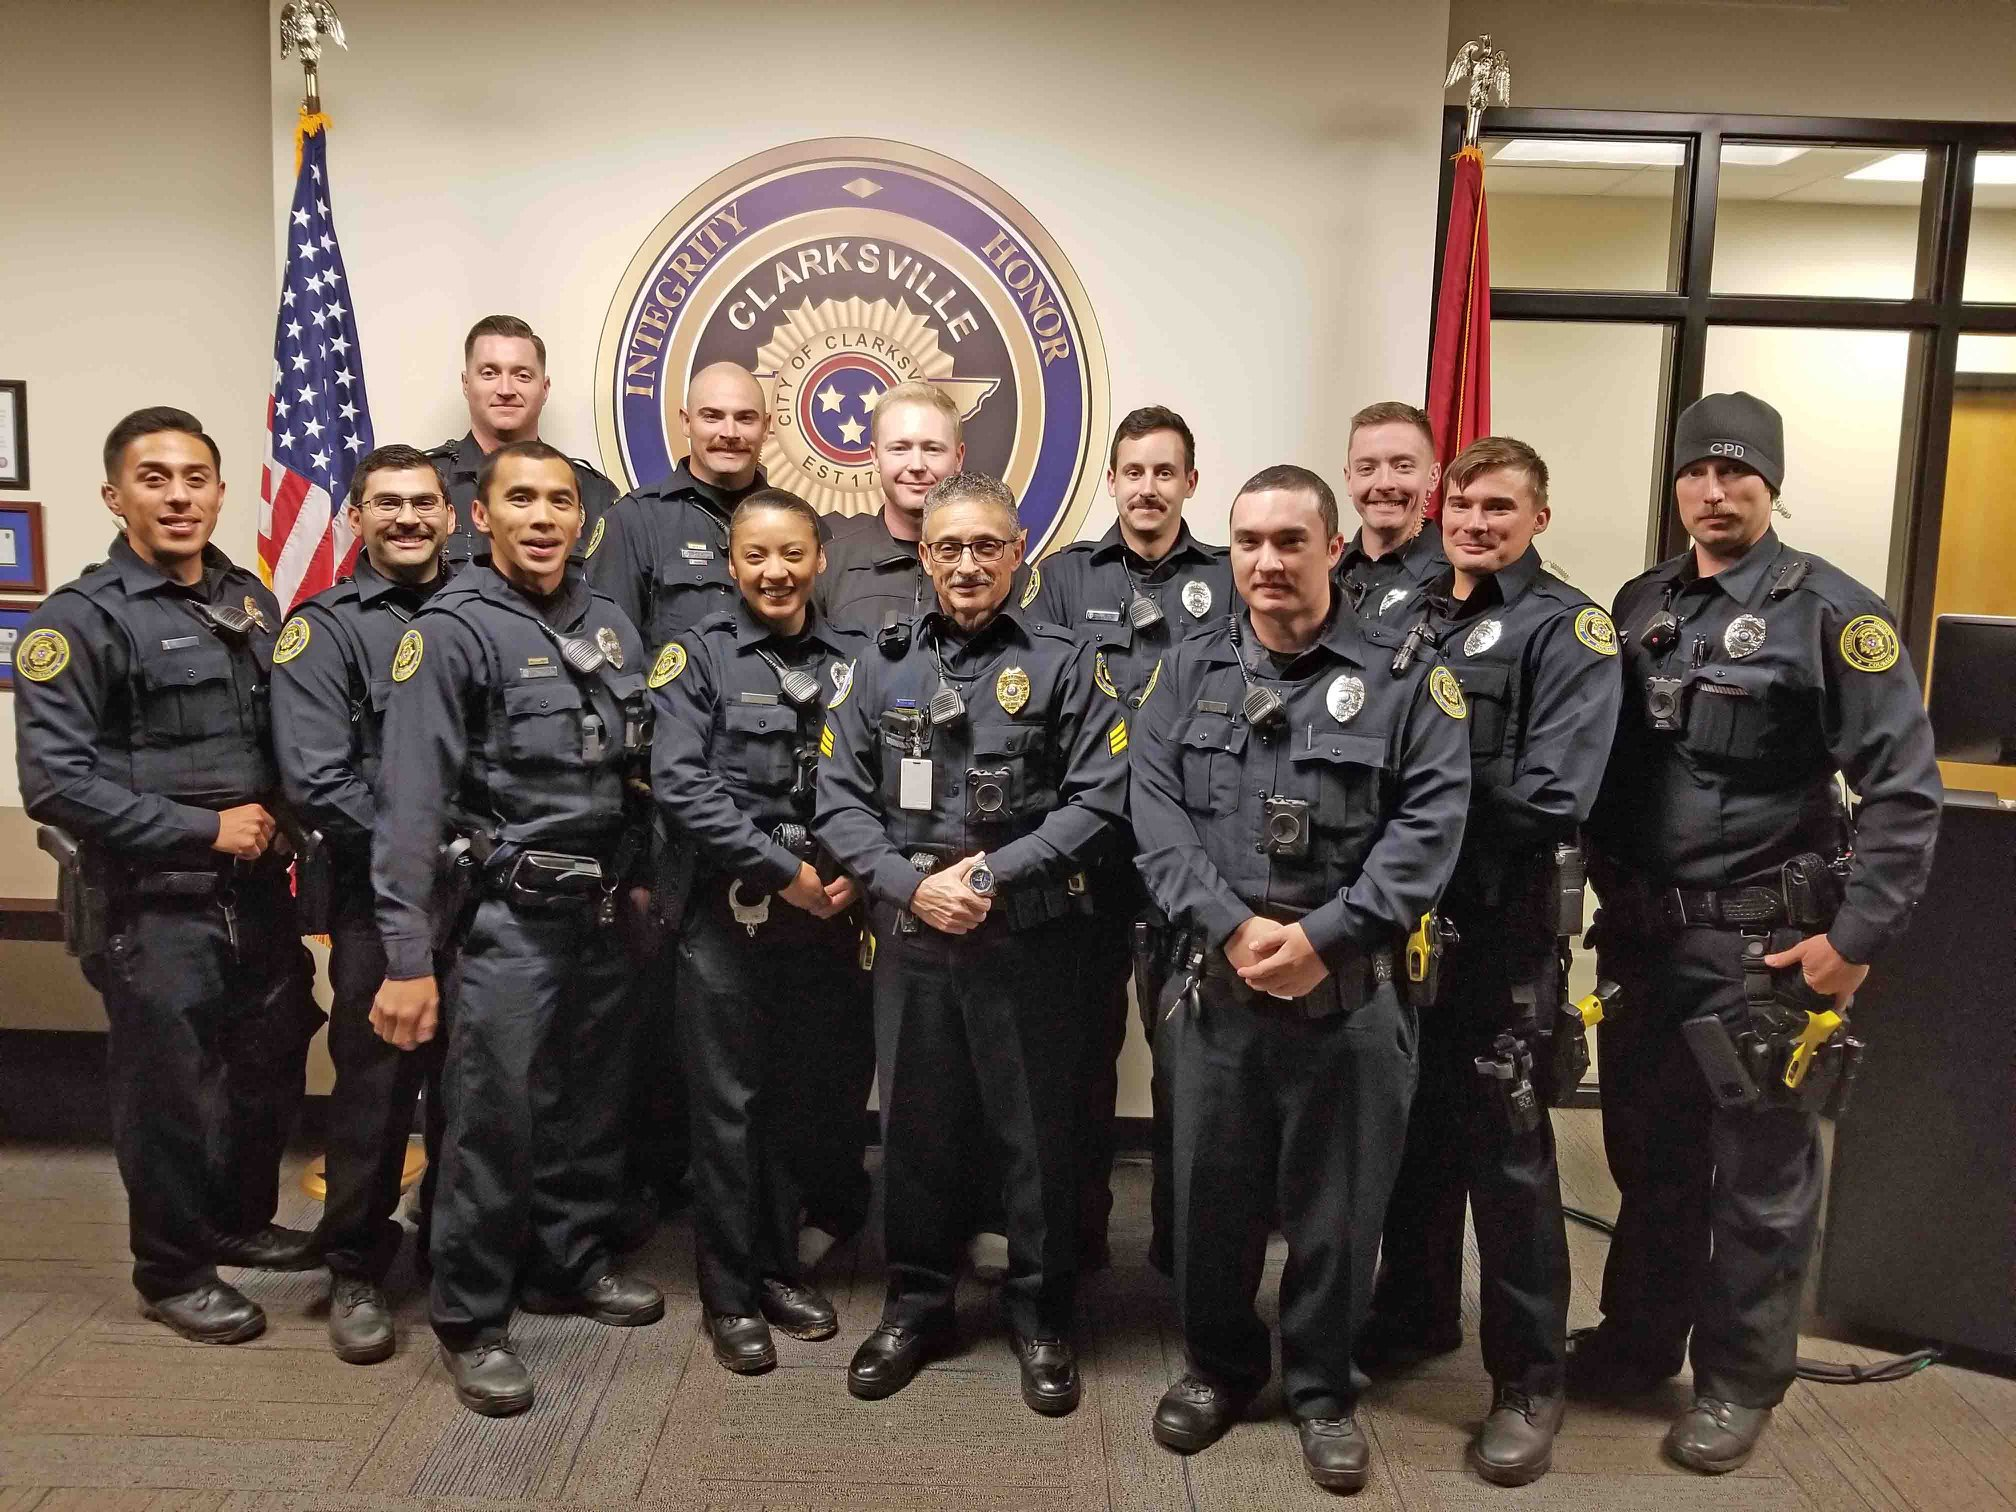 A November 2019 photo of members of the Clarksville Police Department from the retirement ceremony of Sgt. Ramon Ferrer-Ramos after 18 years on the force. (Photo: Clarksville Police Department Facebook page)